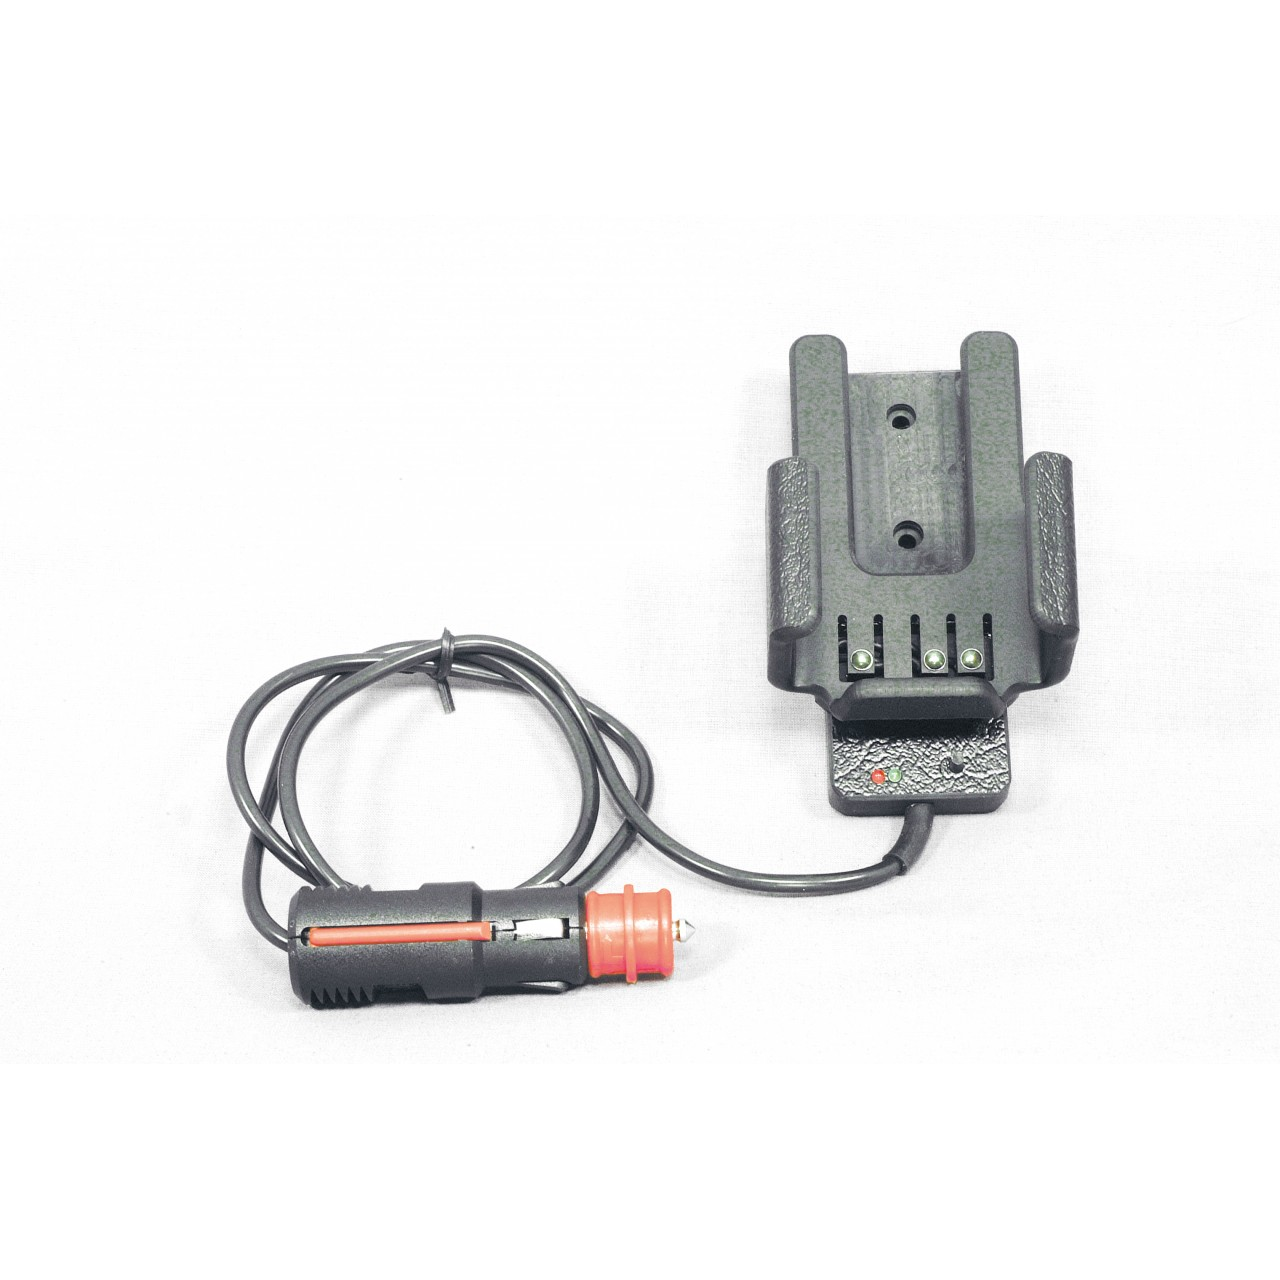 BC-SR89286 Chargers and alimentations - ICOM